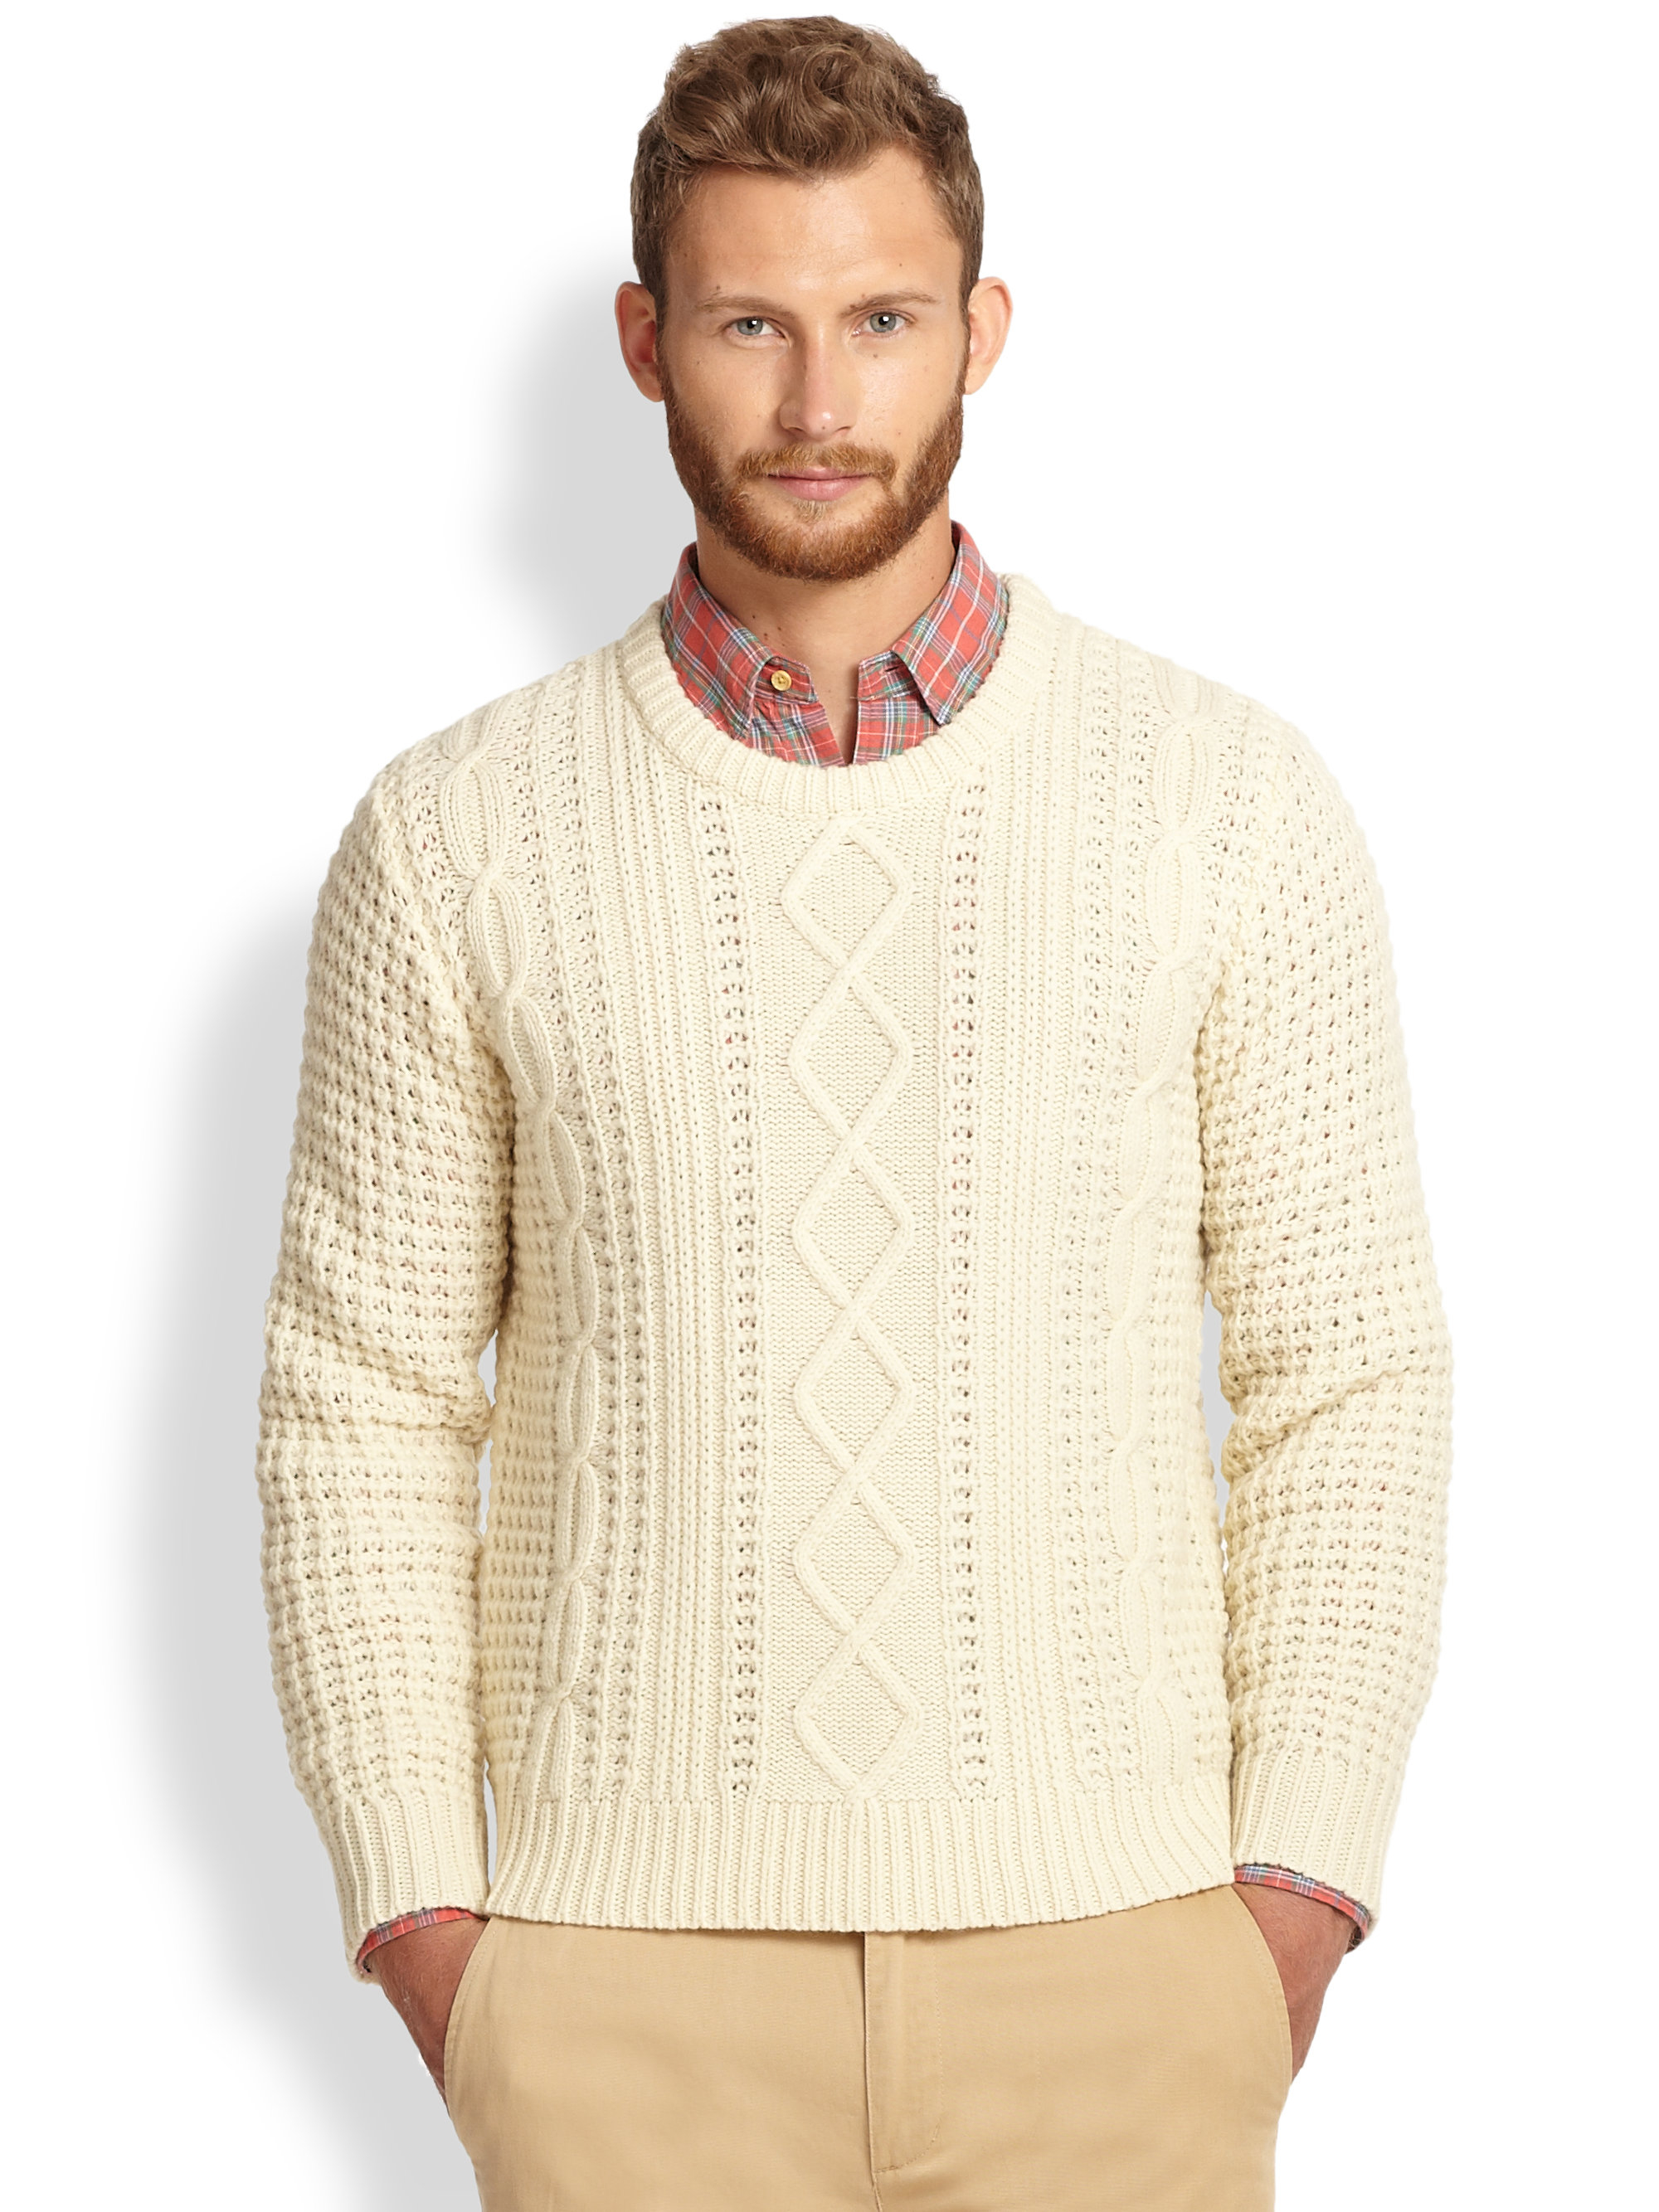 826ab4e32 Lyst - Gant Rugger Lambswool Cable Knit Sweater in Natural for Men